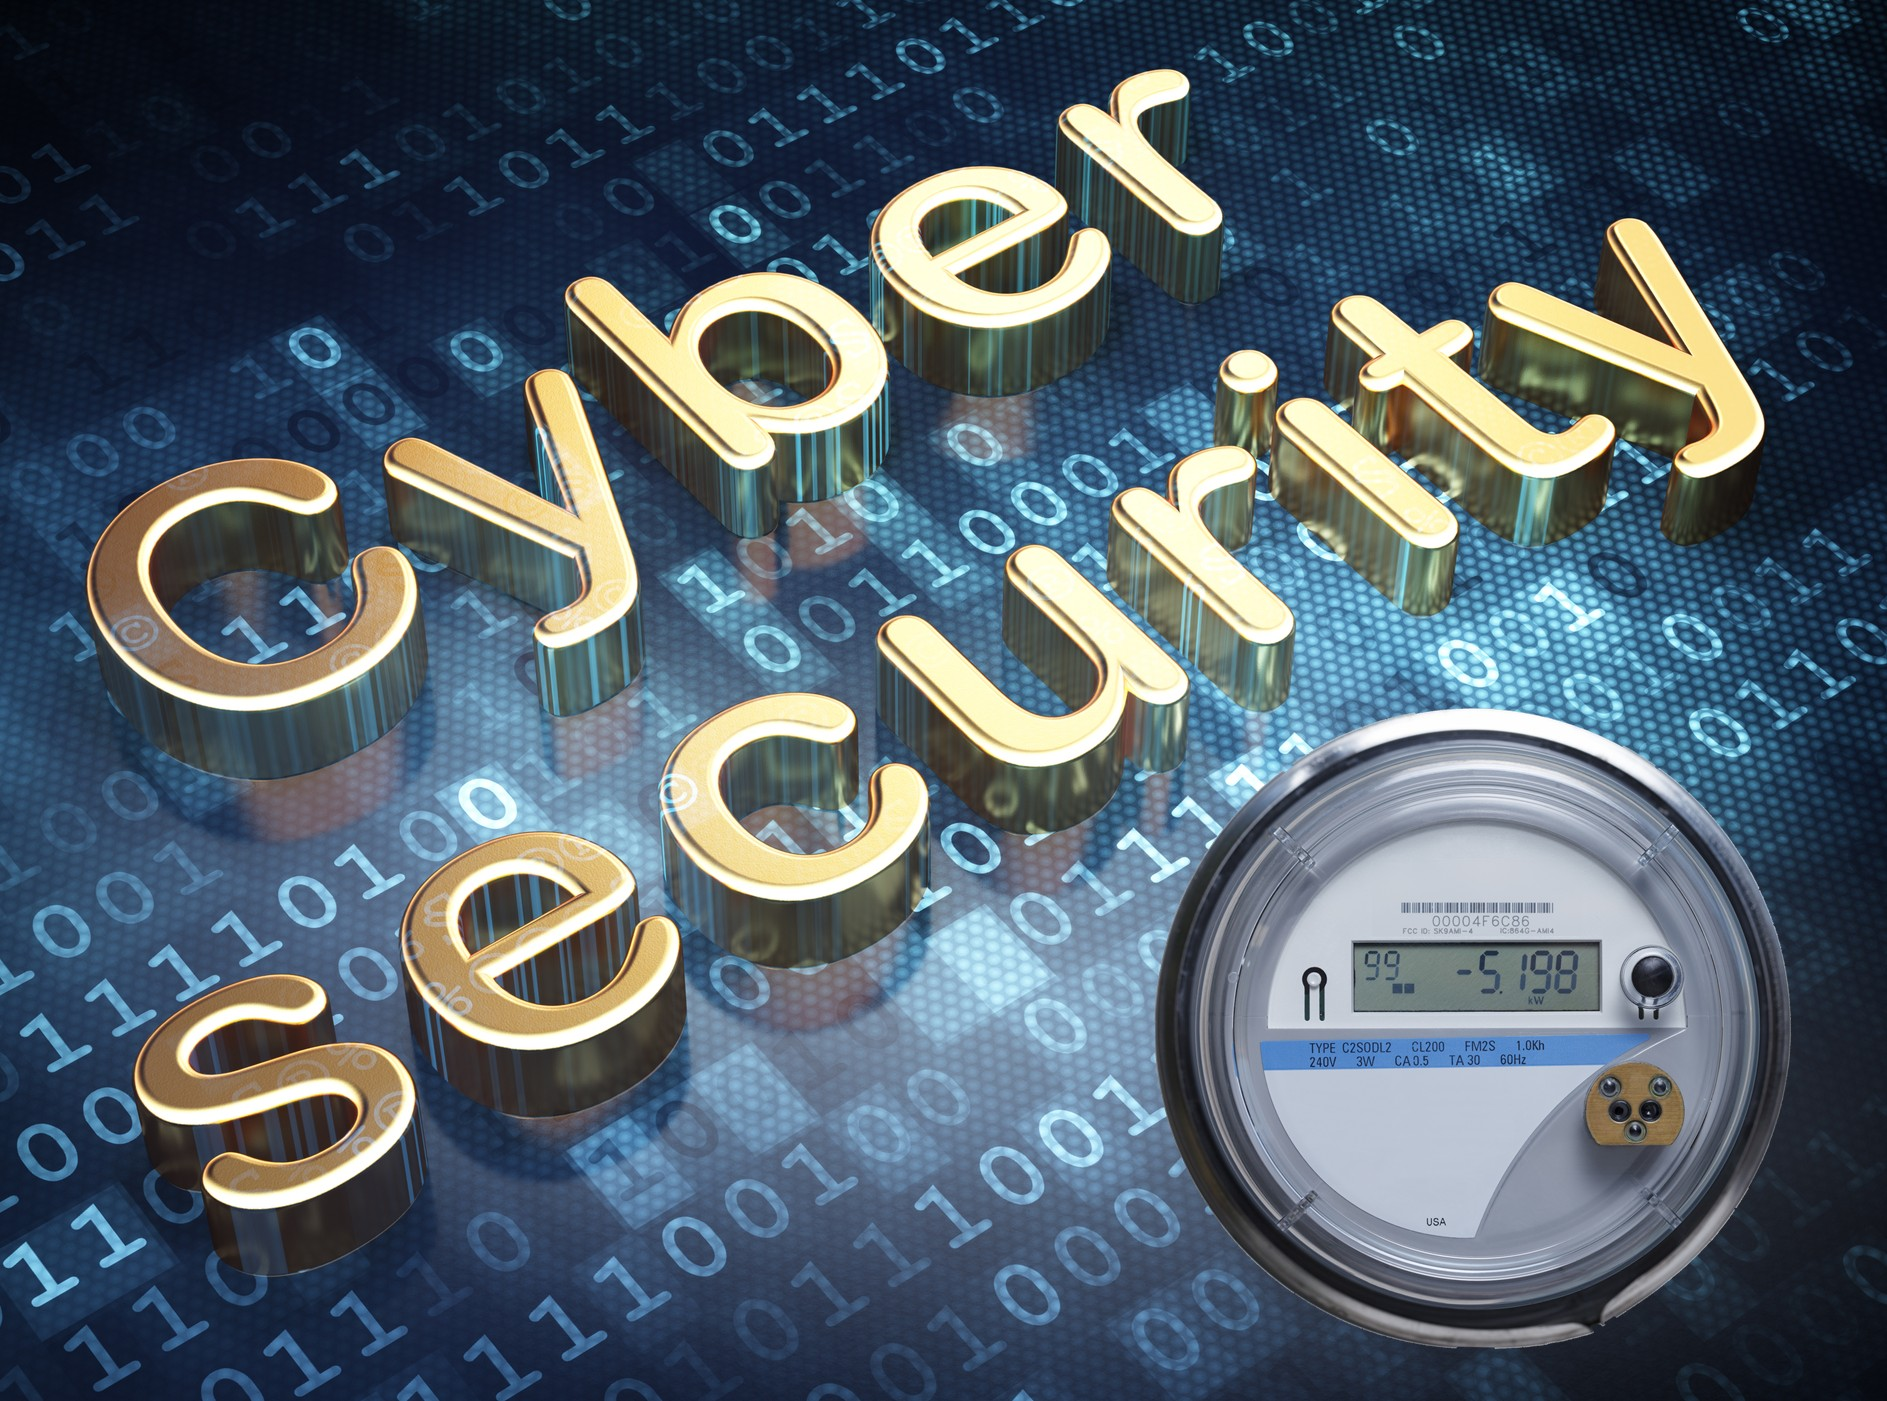 Cyber security clipart free banner freeuse download Cyber clipart - ClipartFest banner freeuse download